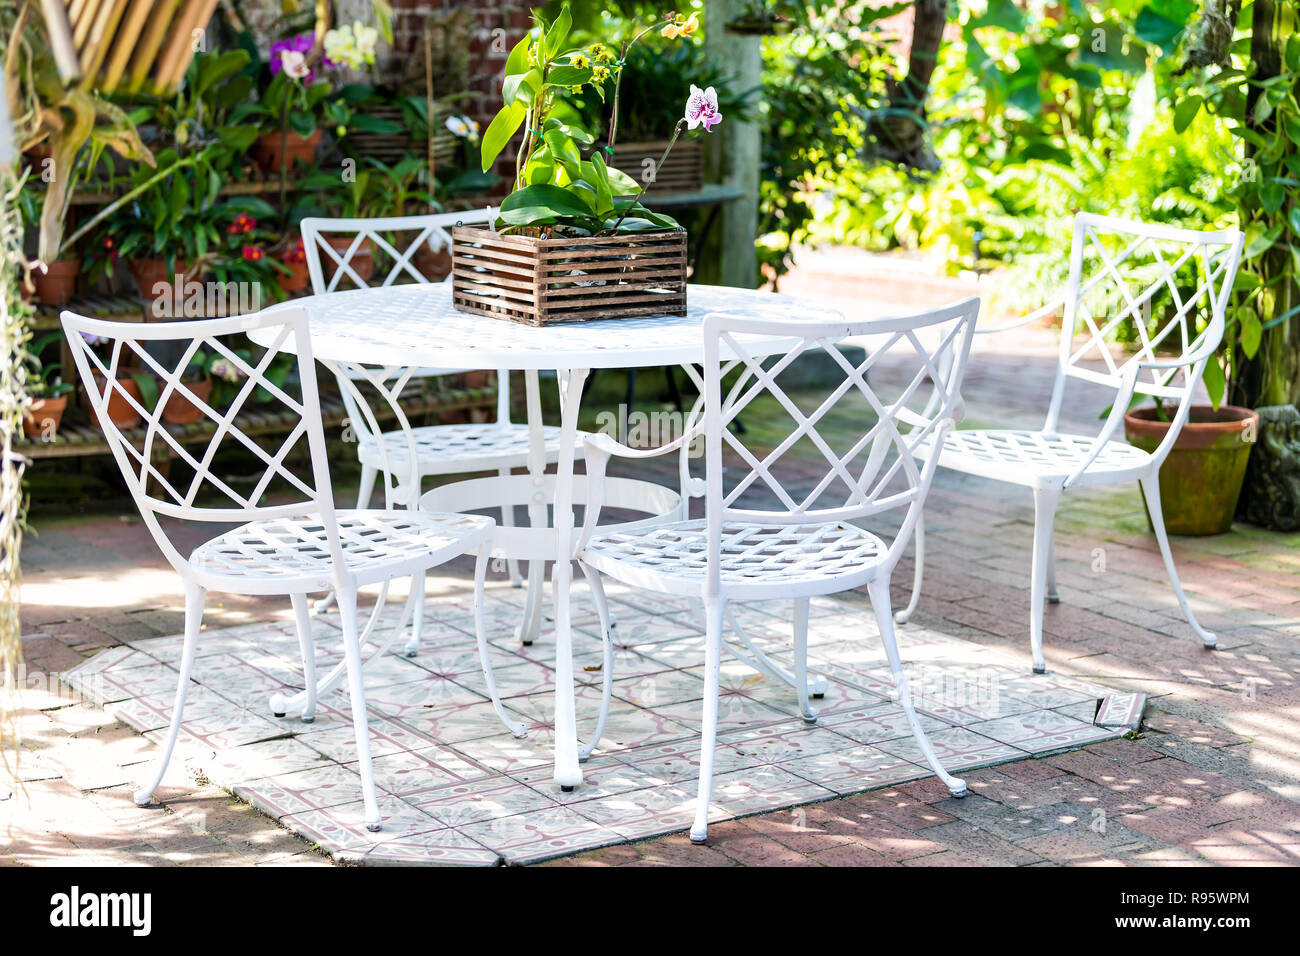 White cast iron chairs, table in outdoor, outside sitting area